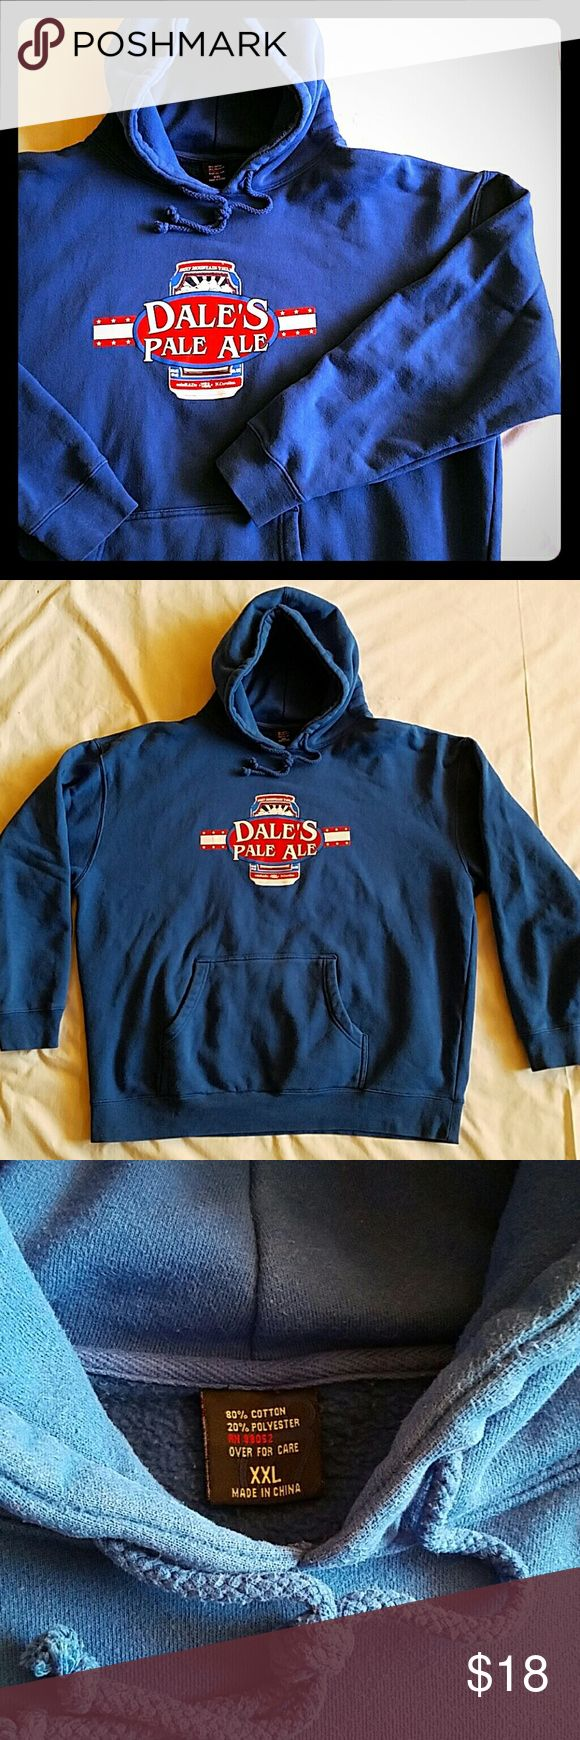 "Dale's Pale Ale Blue Hoodie Sweatshirt Dale's Pale Ale Blue Hoodie Sweatshirt - High quality UNISEX hoodie with front pouch, has classic Dale's Pale Ale logo from Oskar Blues Brewery on front and says ""A Quality CANjugal Visit"" on back. This sweatshirt is no longer available from the brewery! Approx measurements: 27.5"" pit-to-pit, 26"" front collar to hem. 80% cotton, 20% polyester. Machine wash warm. In beautiful gently used condition. Show your super fandom! Tops Sweatshirts & Hoodies"